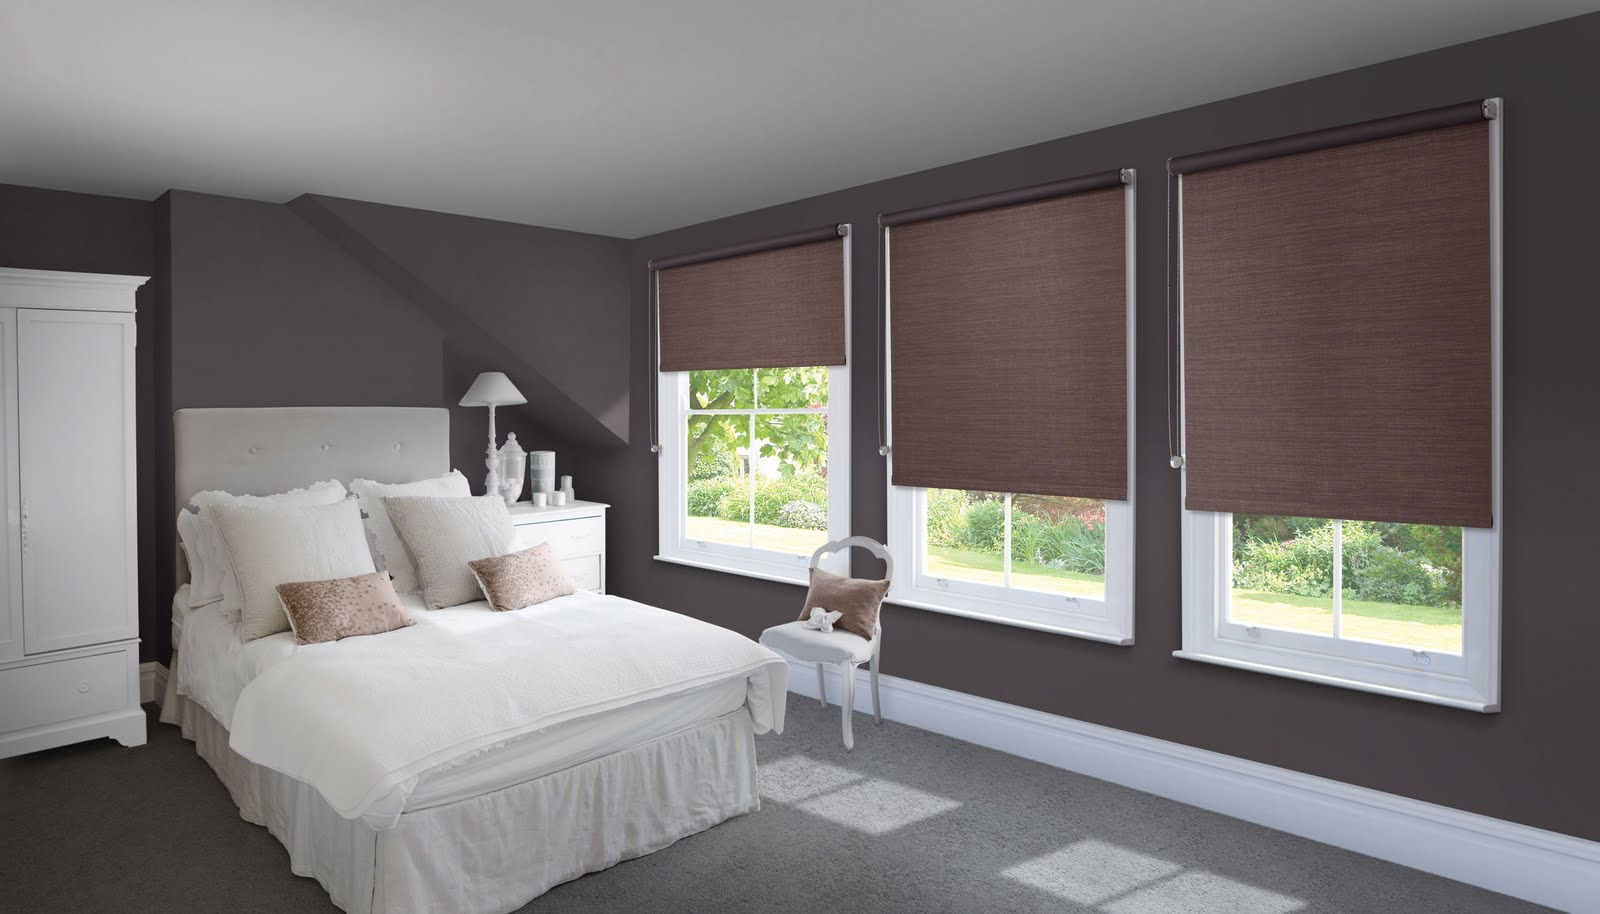 Cheap Roller Blinds Melbourne Roller Shutters And Blinds Melbourne The Blind Factory